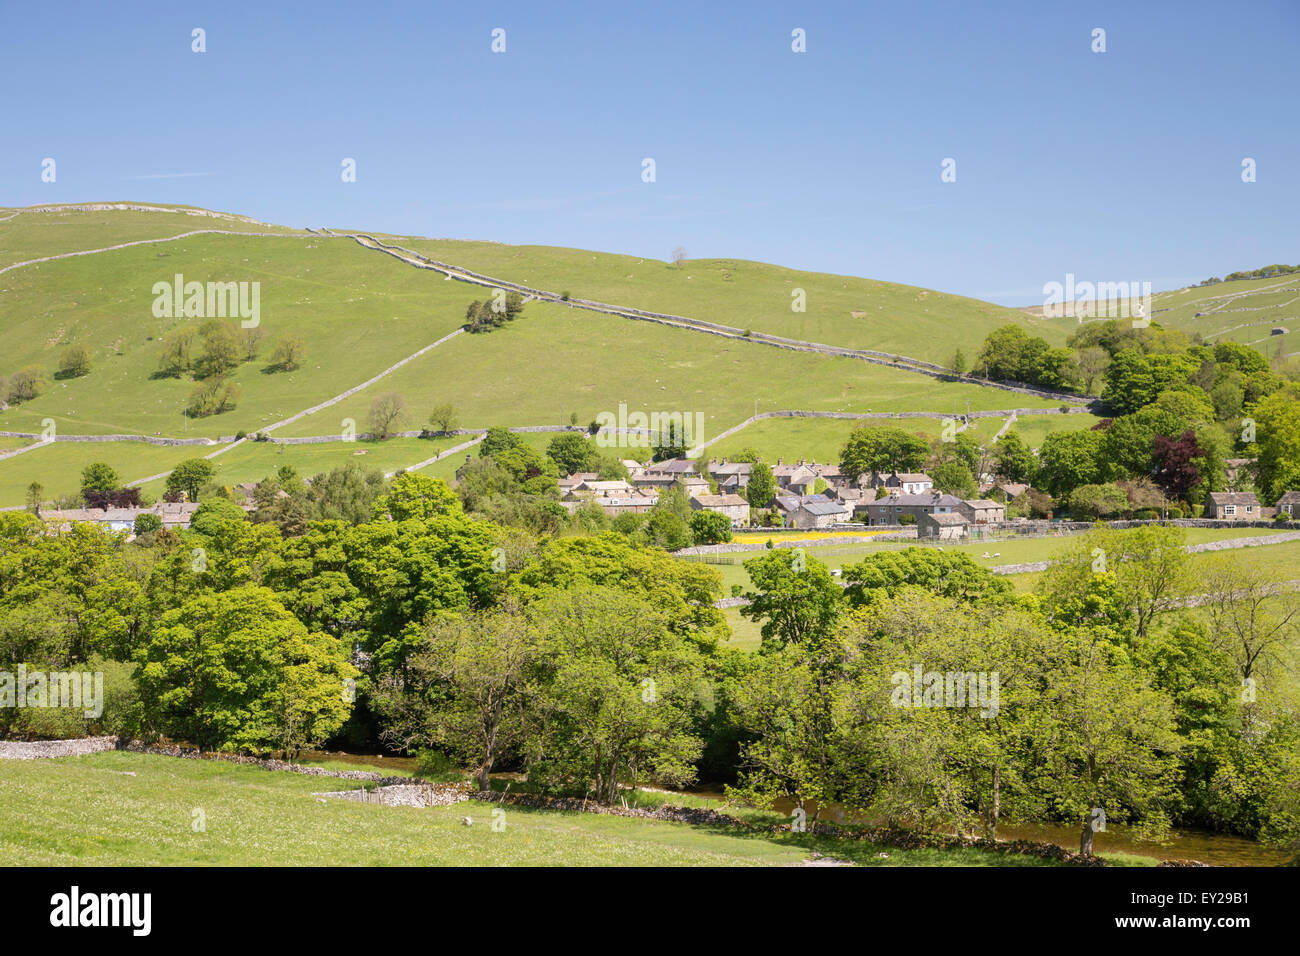 The village of Kettlewell in the Yorkshire Dales National Park, North Yorkshire, England, UK - Stock Image